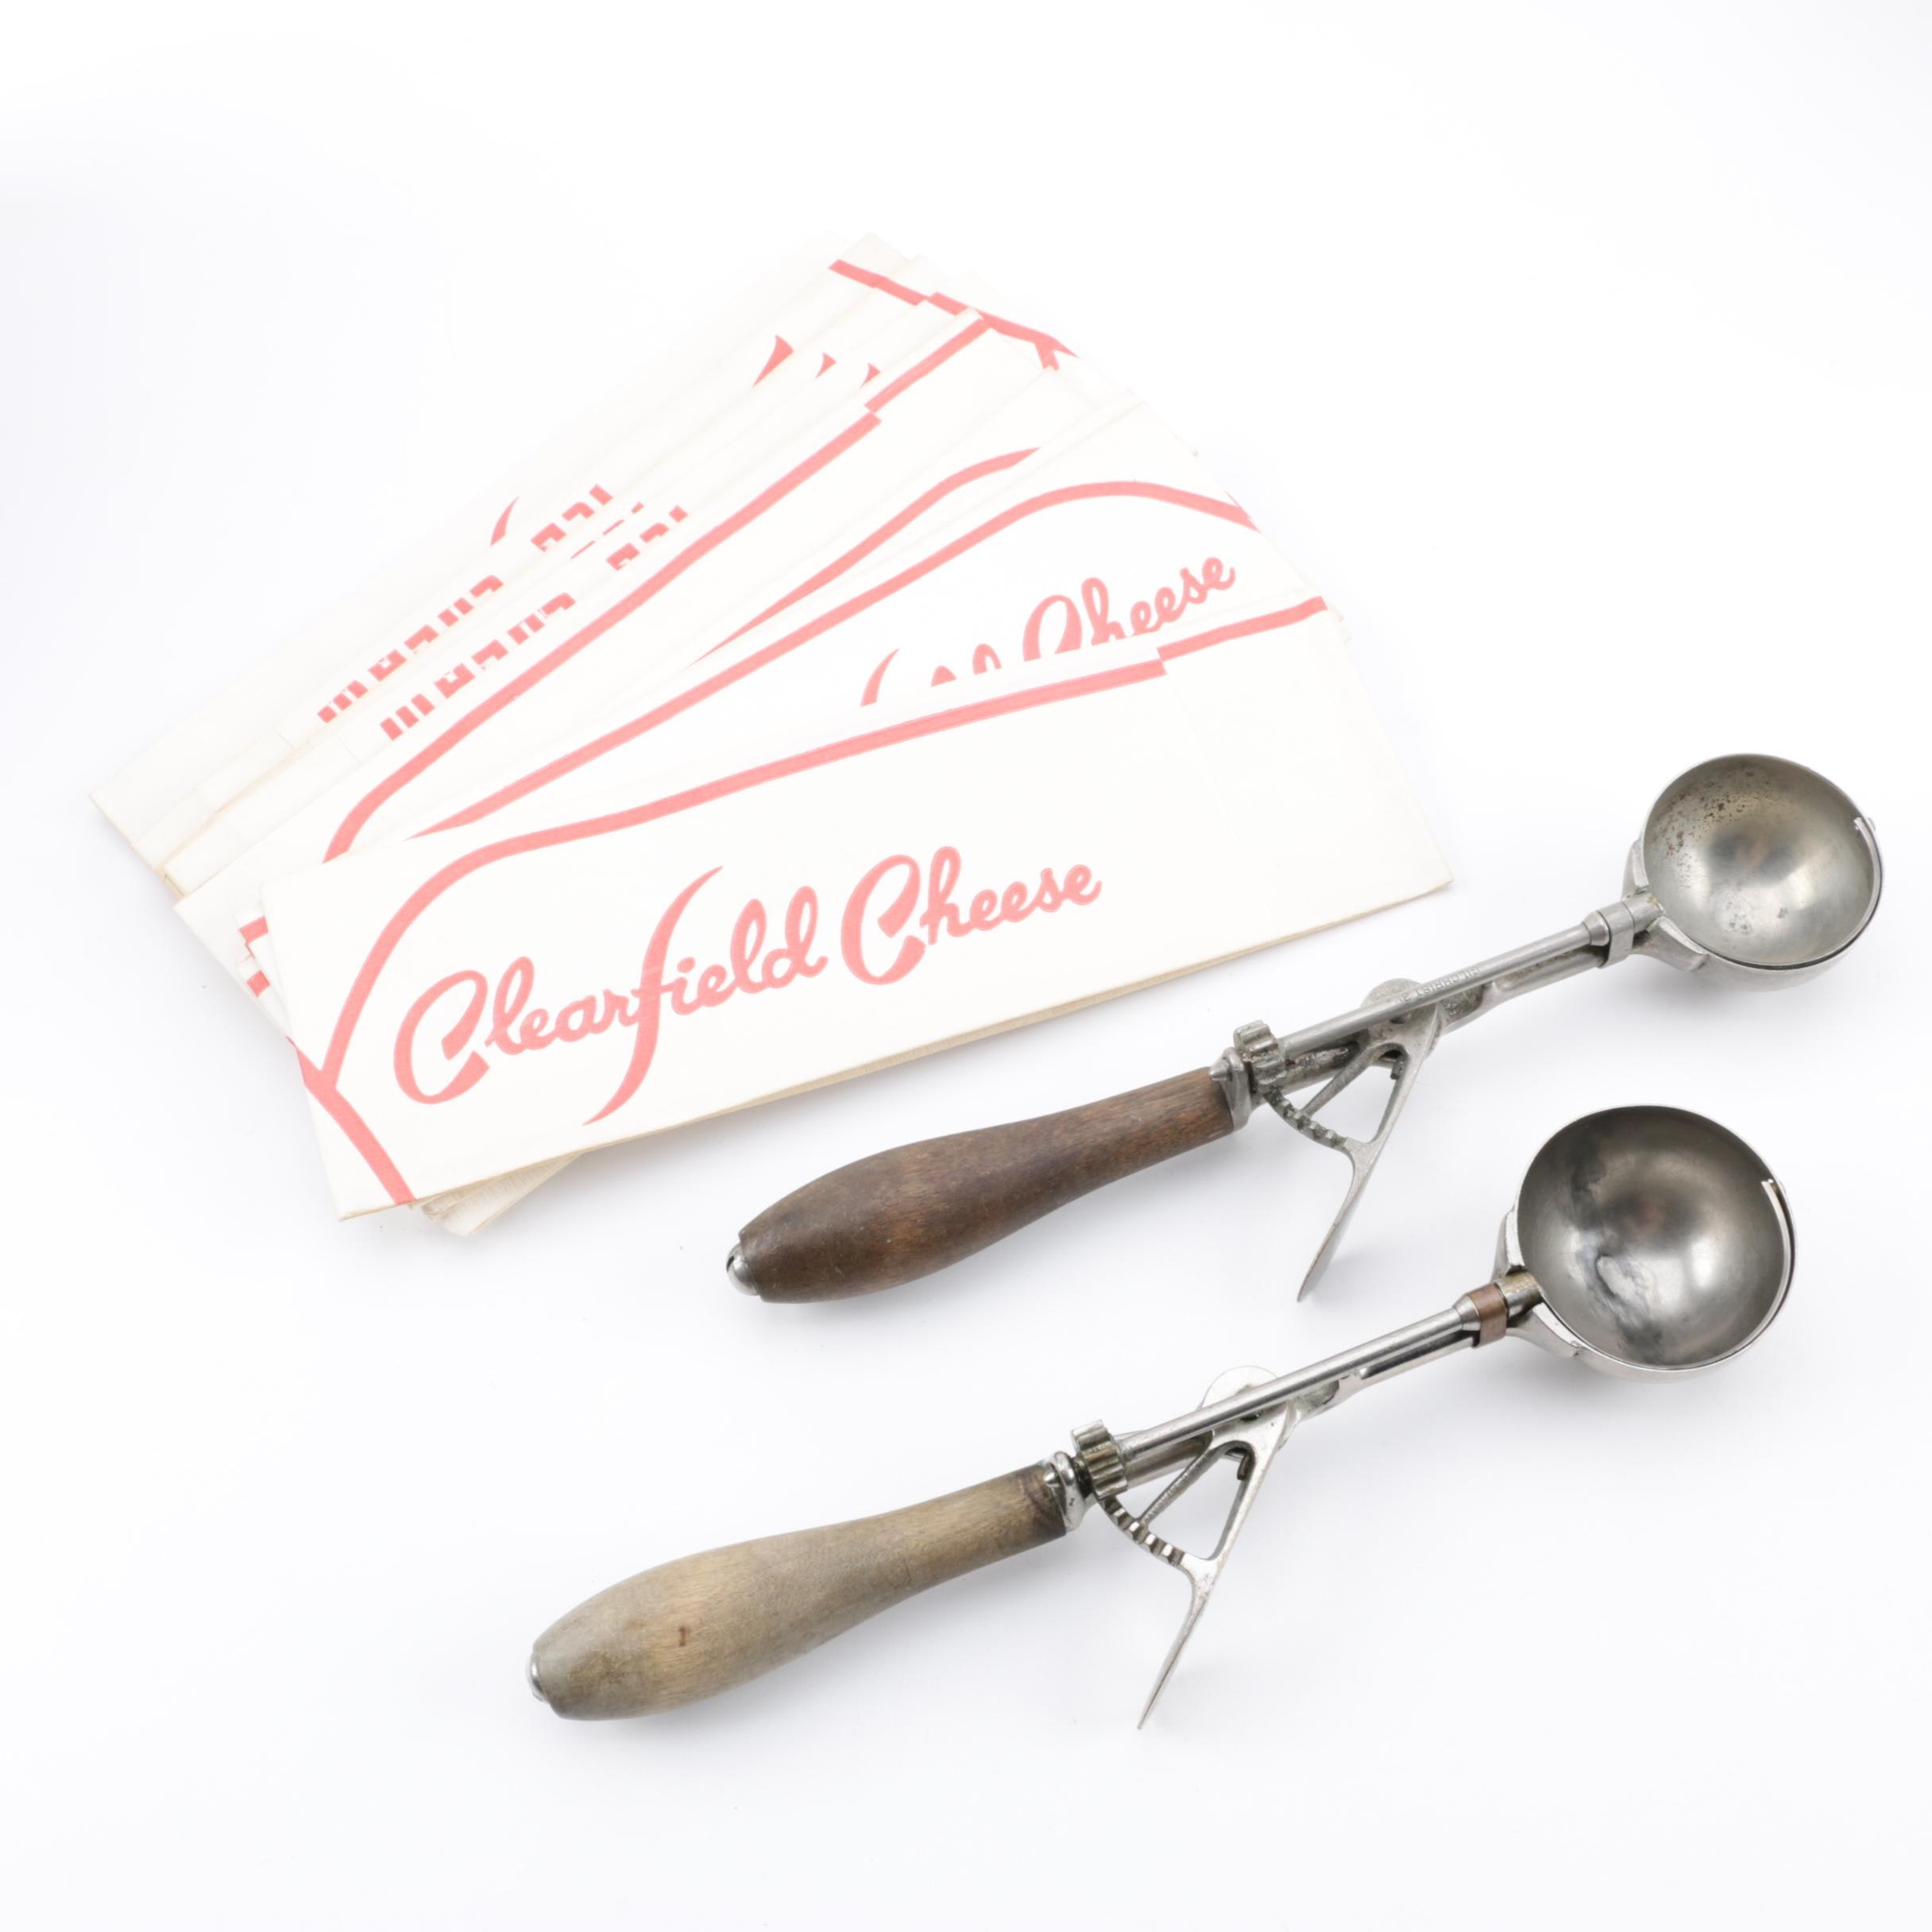 Gilchrist Ice Cream Scoops ca. 1910 with Paper Forage Hats